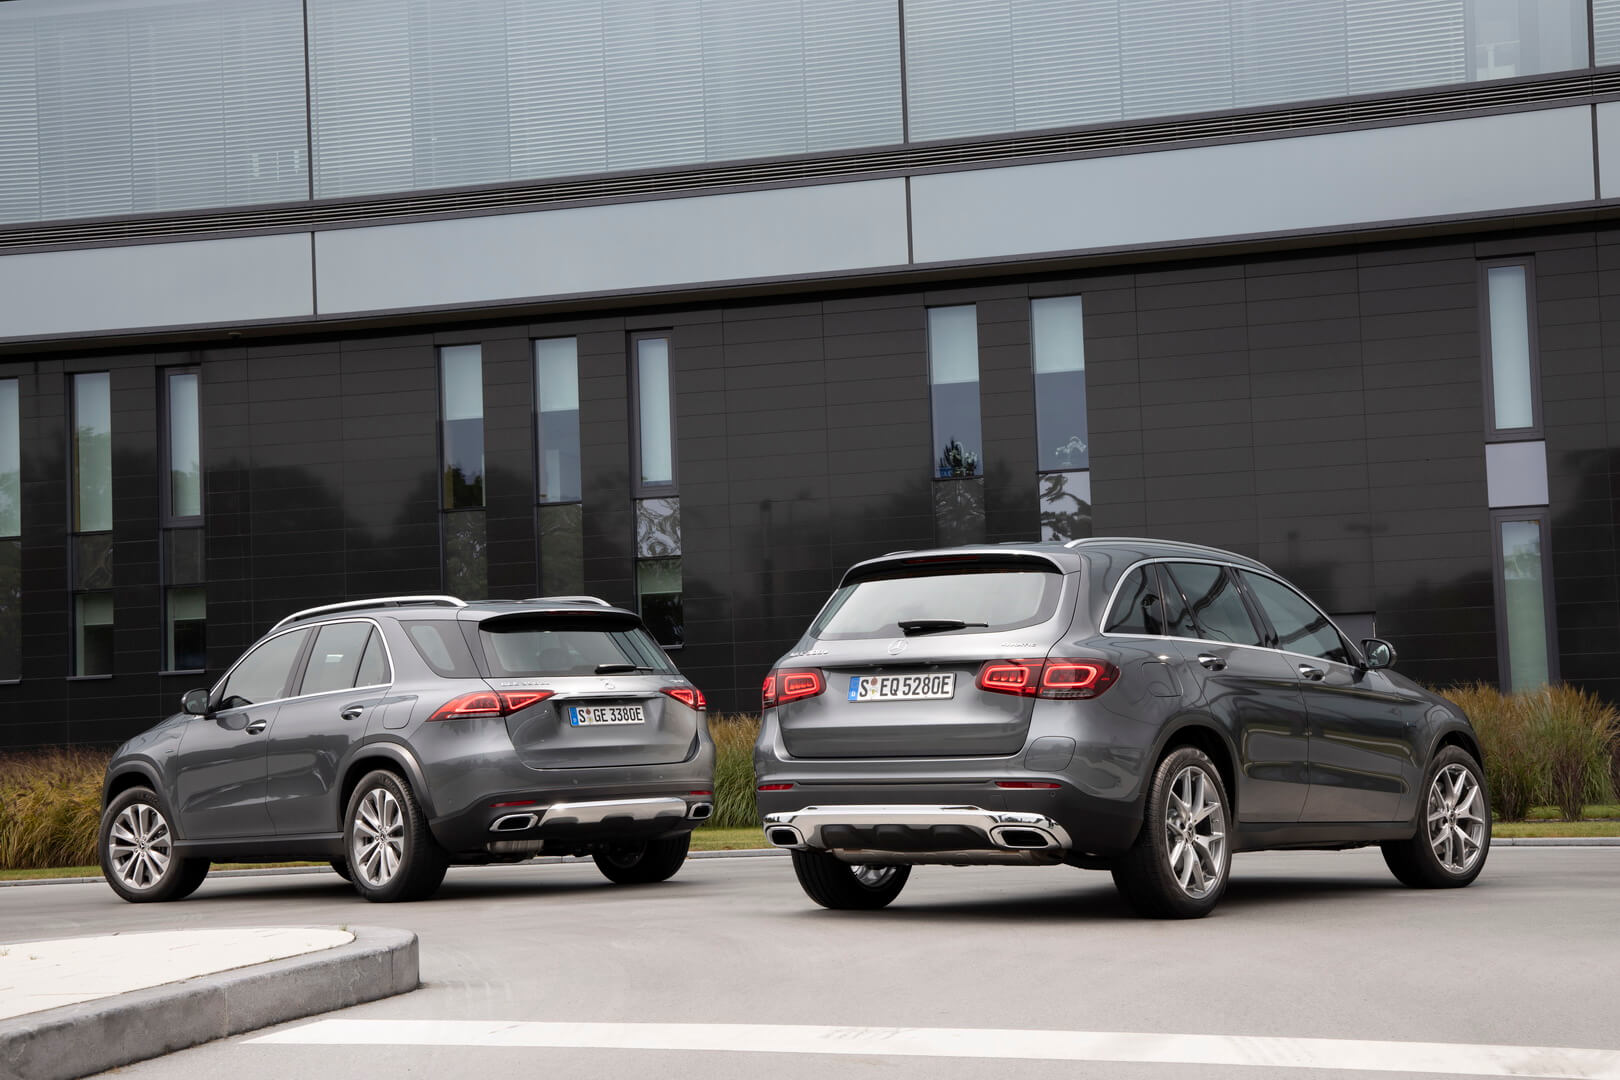 Mercedes-Benz GLE 350 de 4MATIC и GLC 300 e 4MATIC